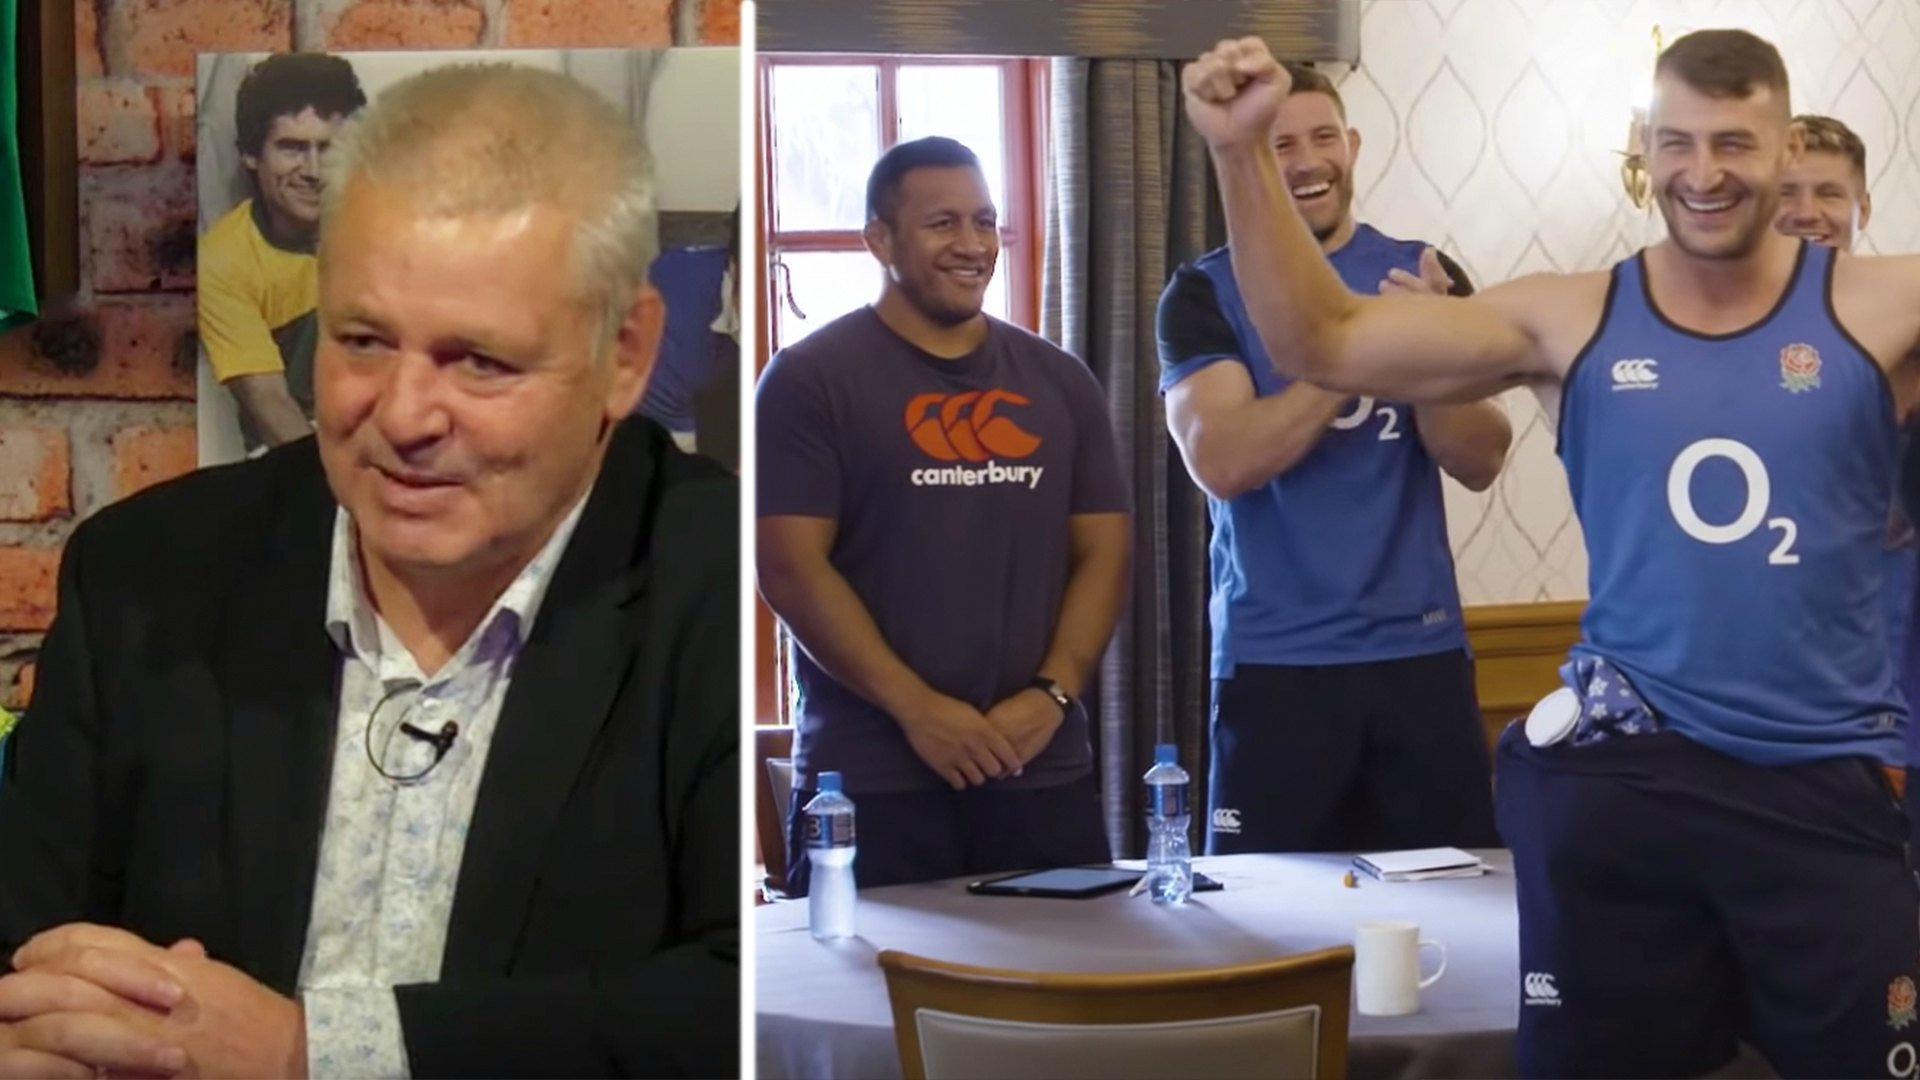 Warren Gatland names three England forwards as surprise options to be Lions captain in English-dominated team